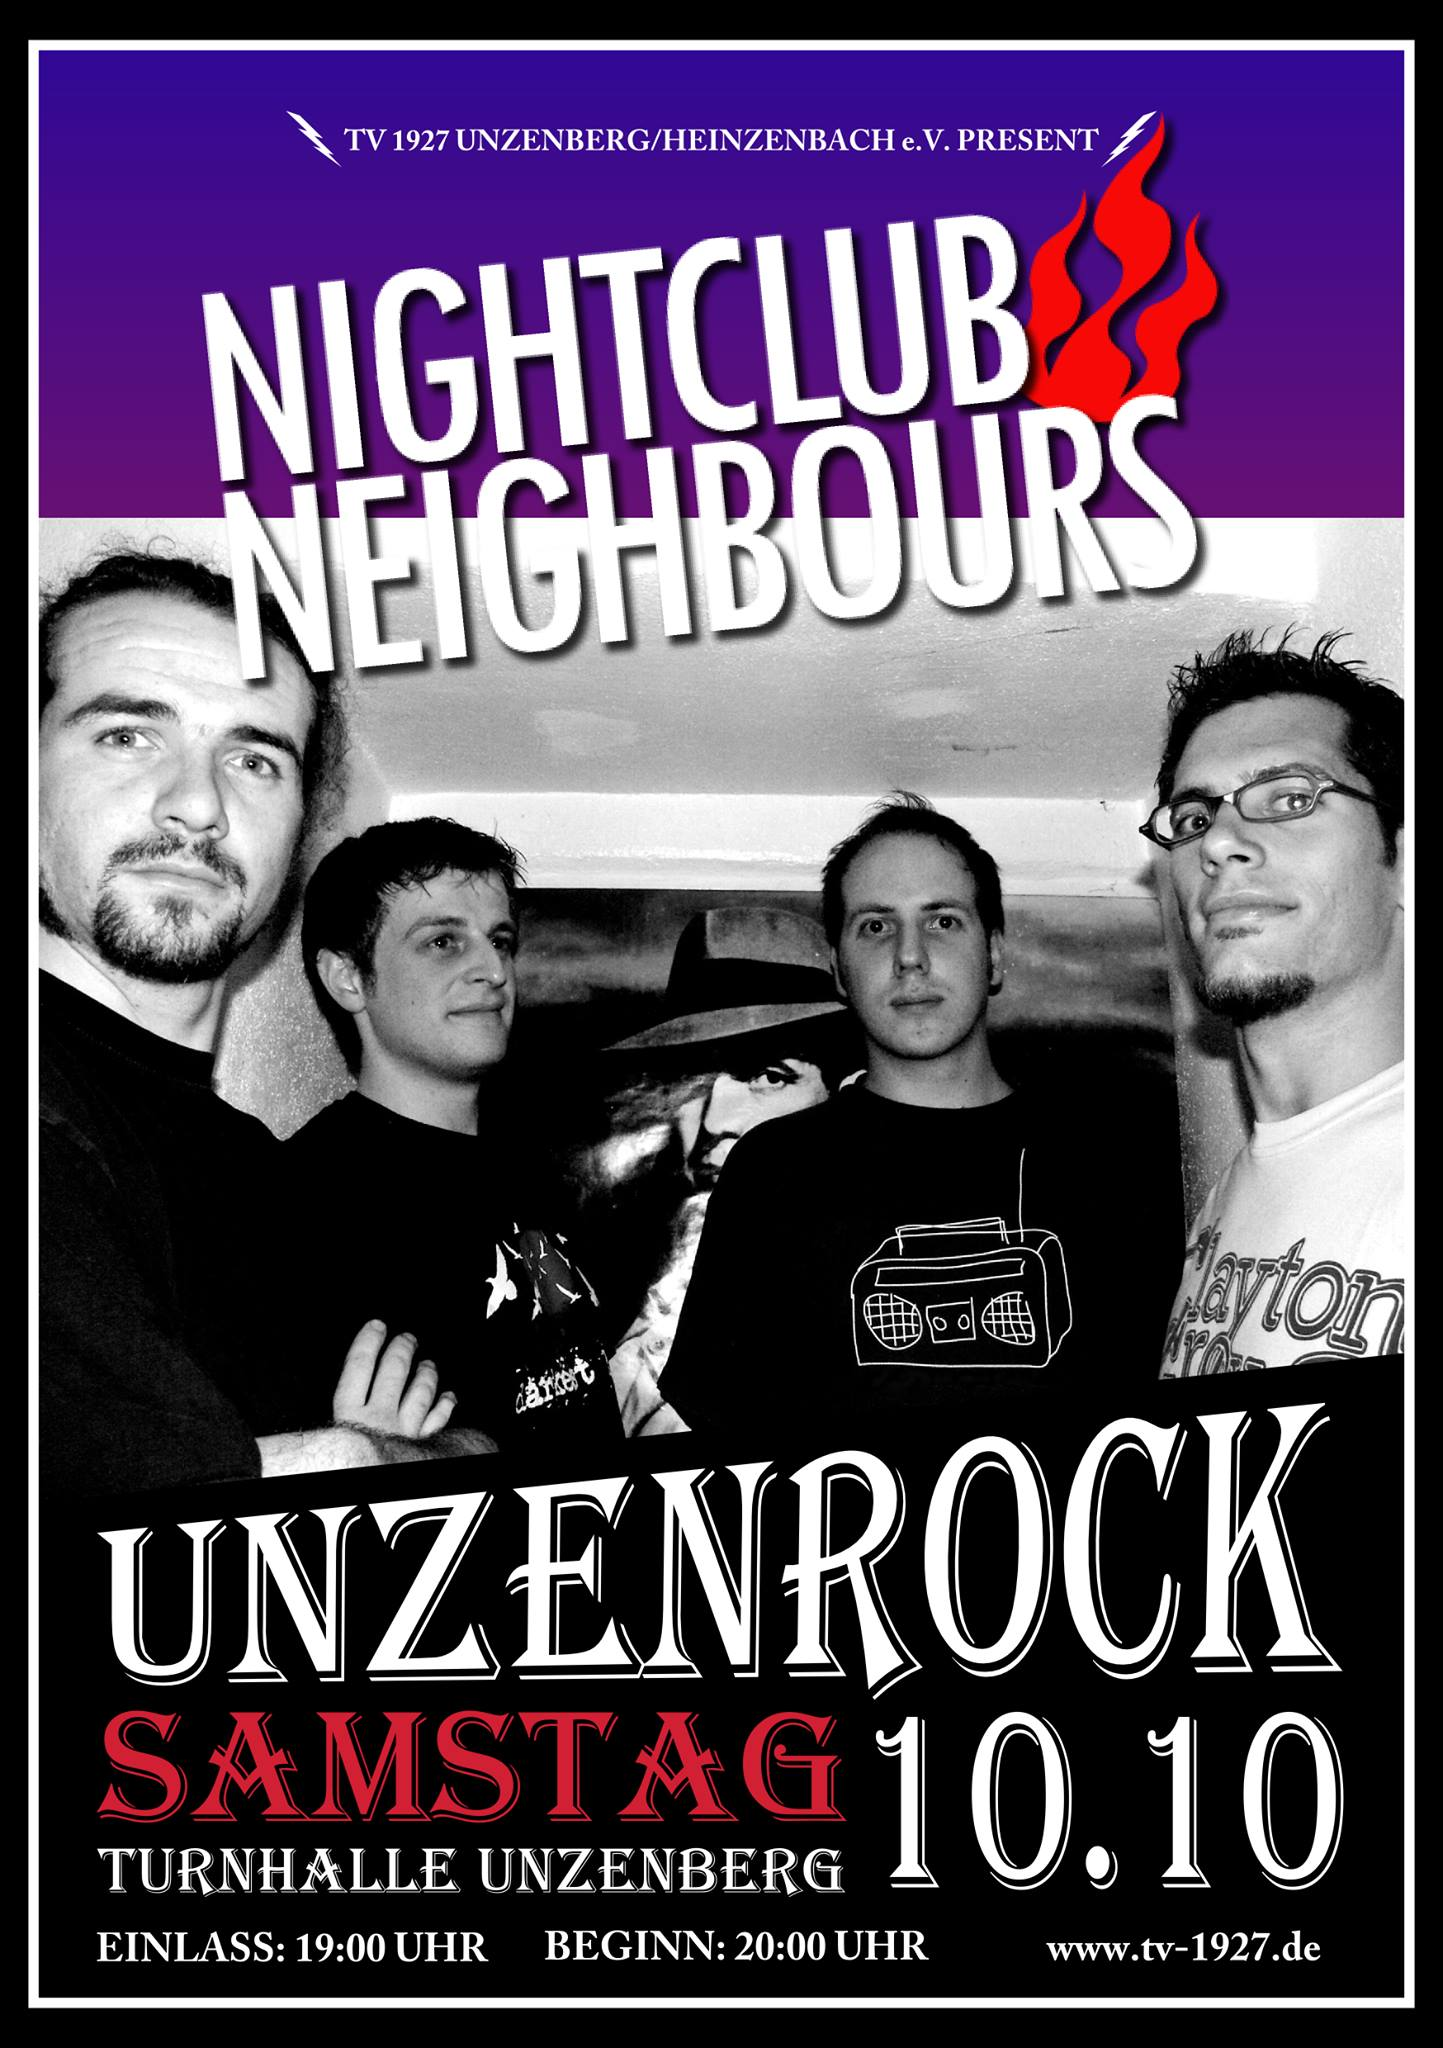 Nightclub Neighbours beim Unzenrock